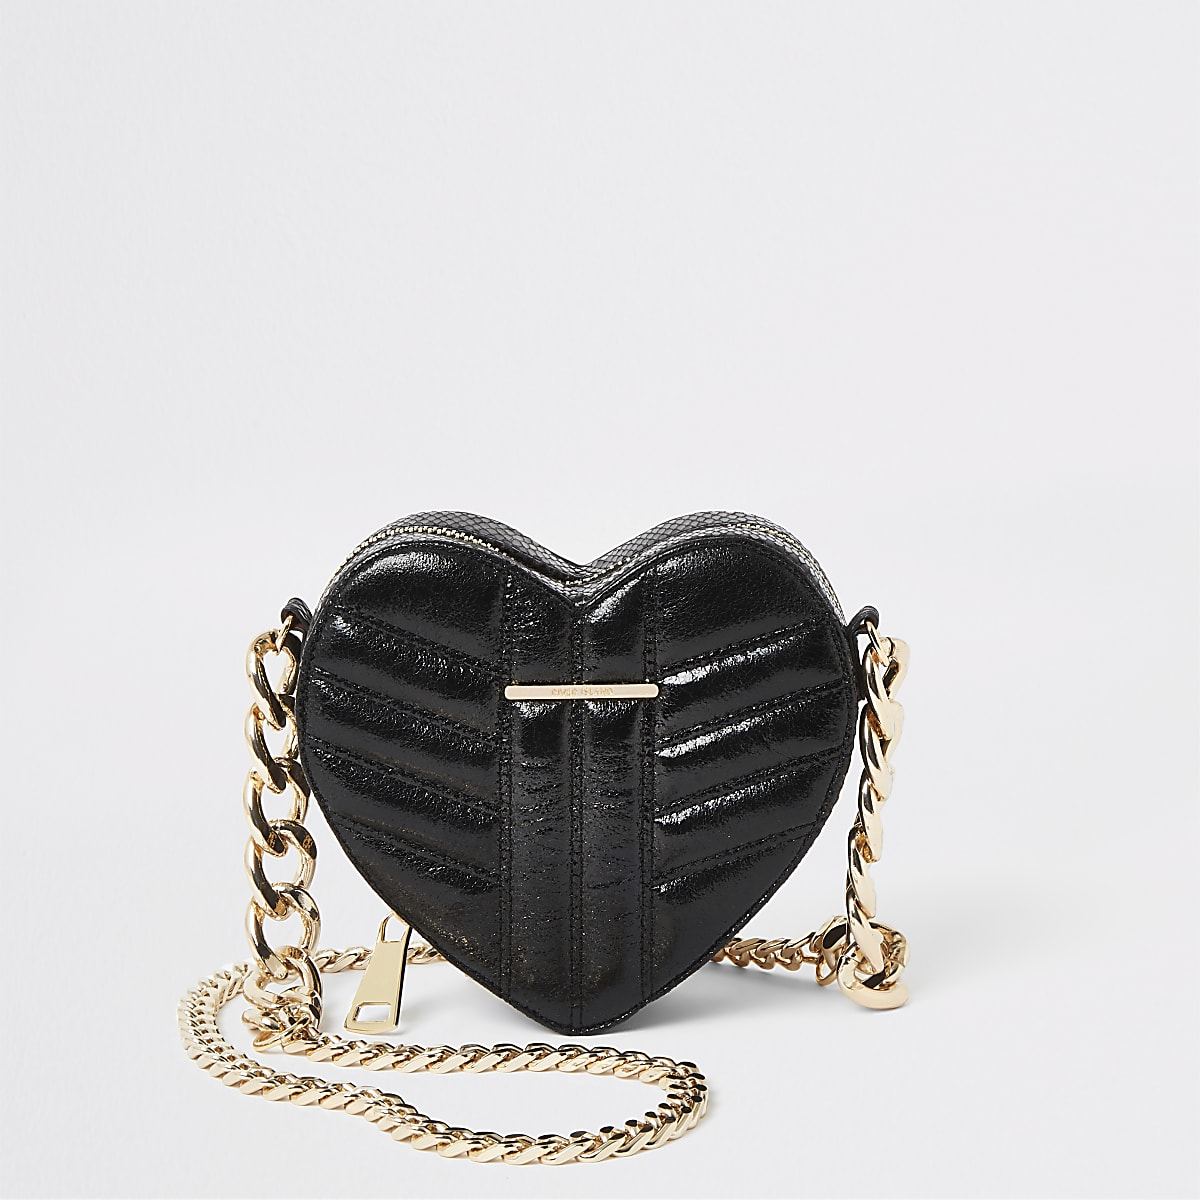 fb2115224f7 Black quilted heart shape cross body bag